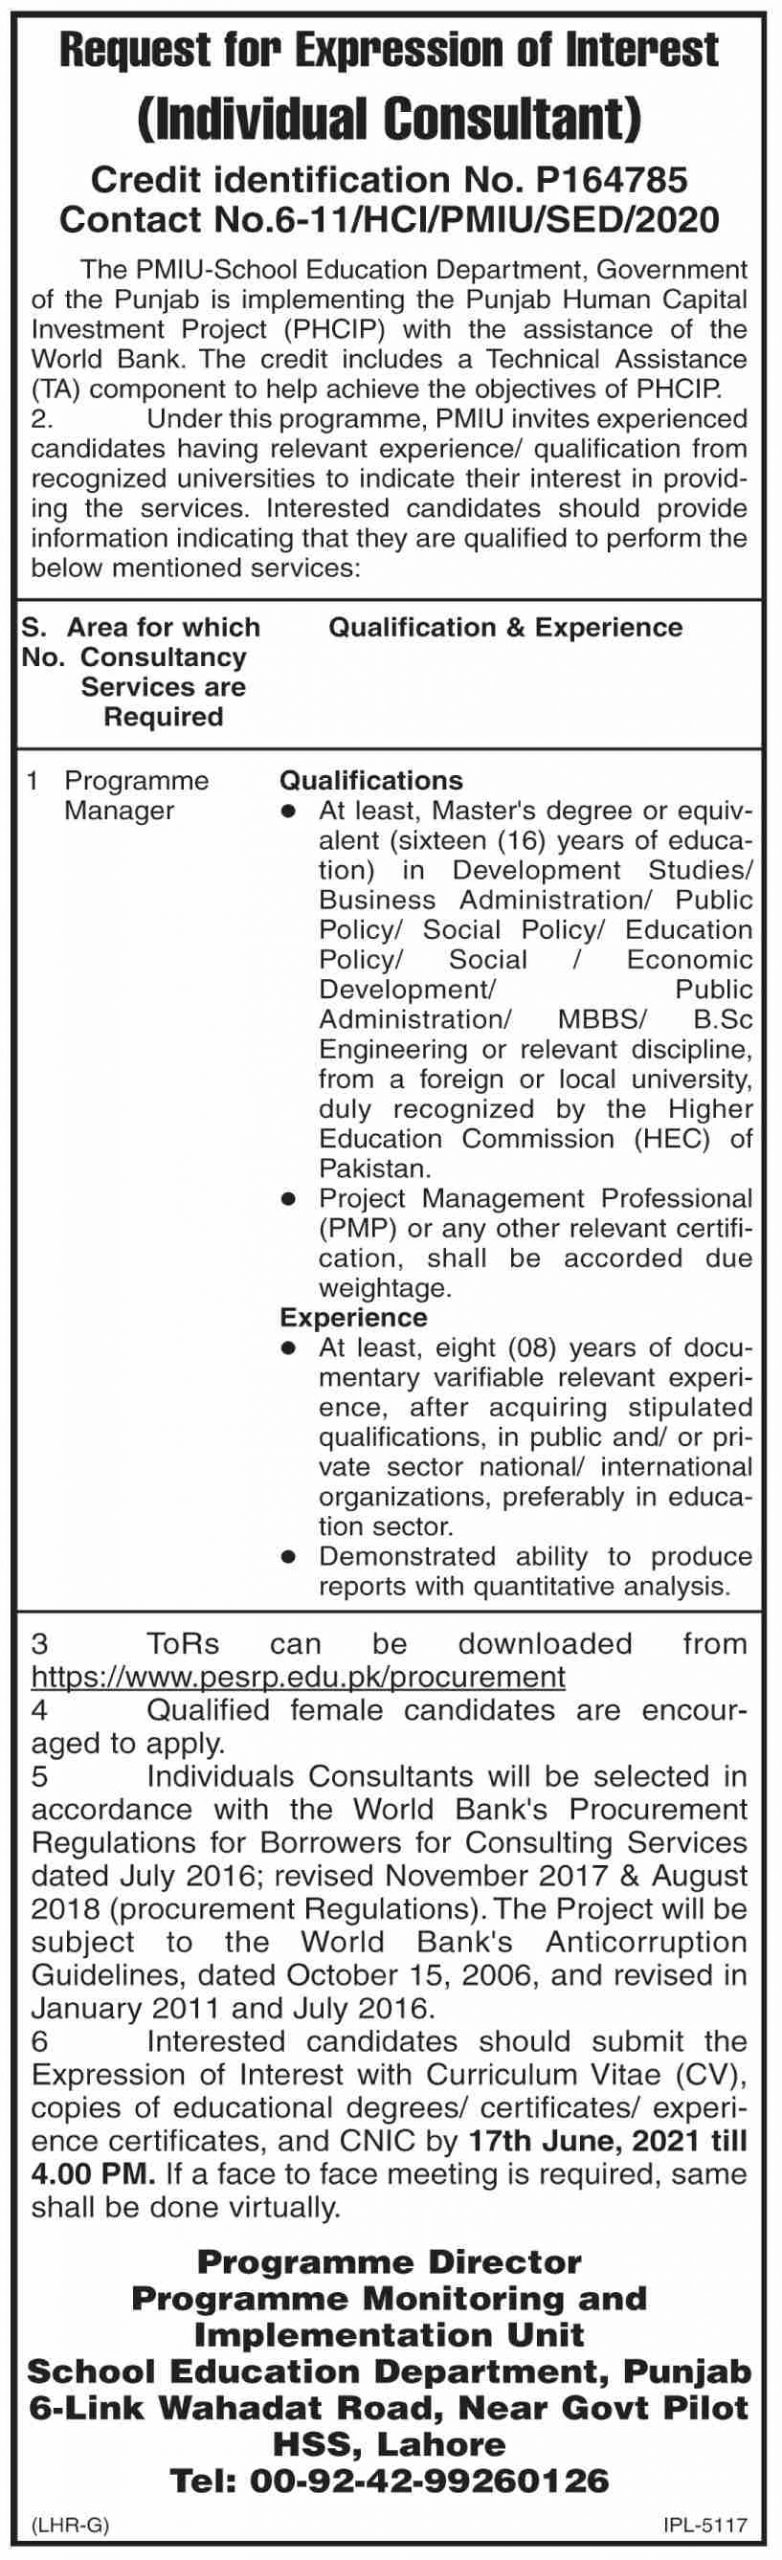 Government of Punjab School Education Department Jobs 2021